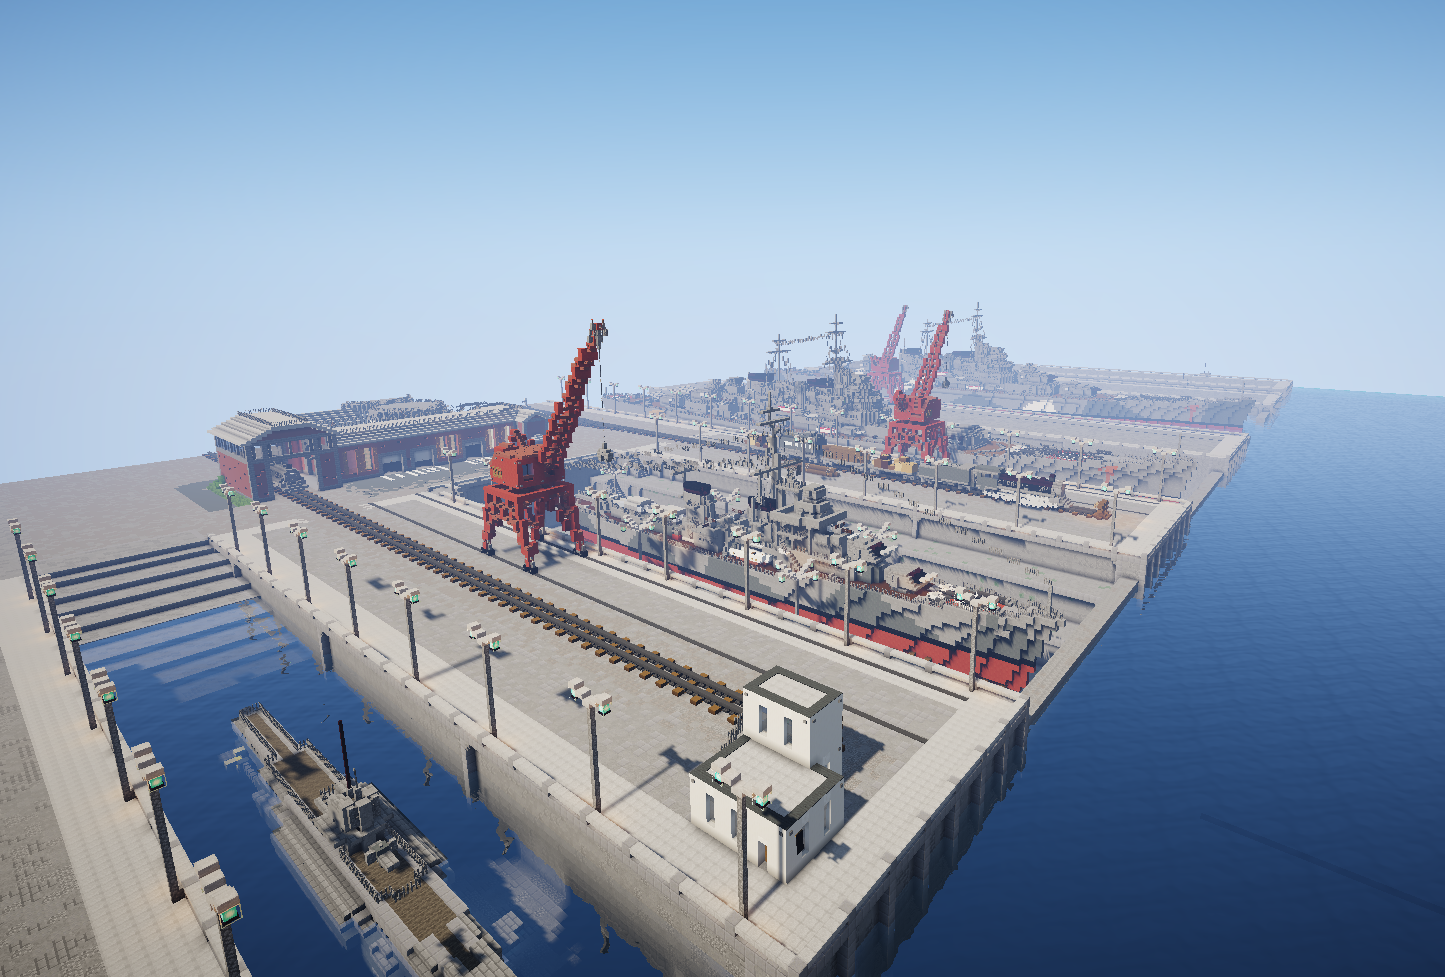 upload_2018-7-17_0-56-39.png